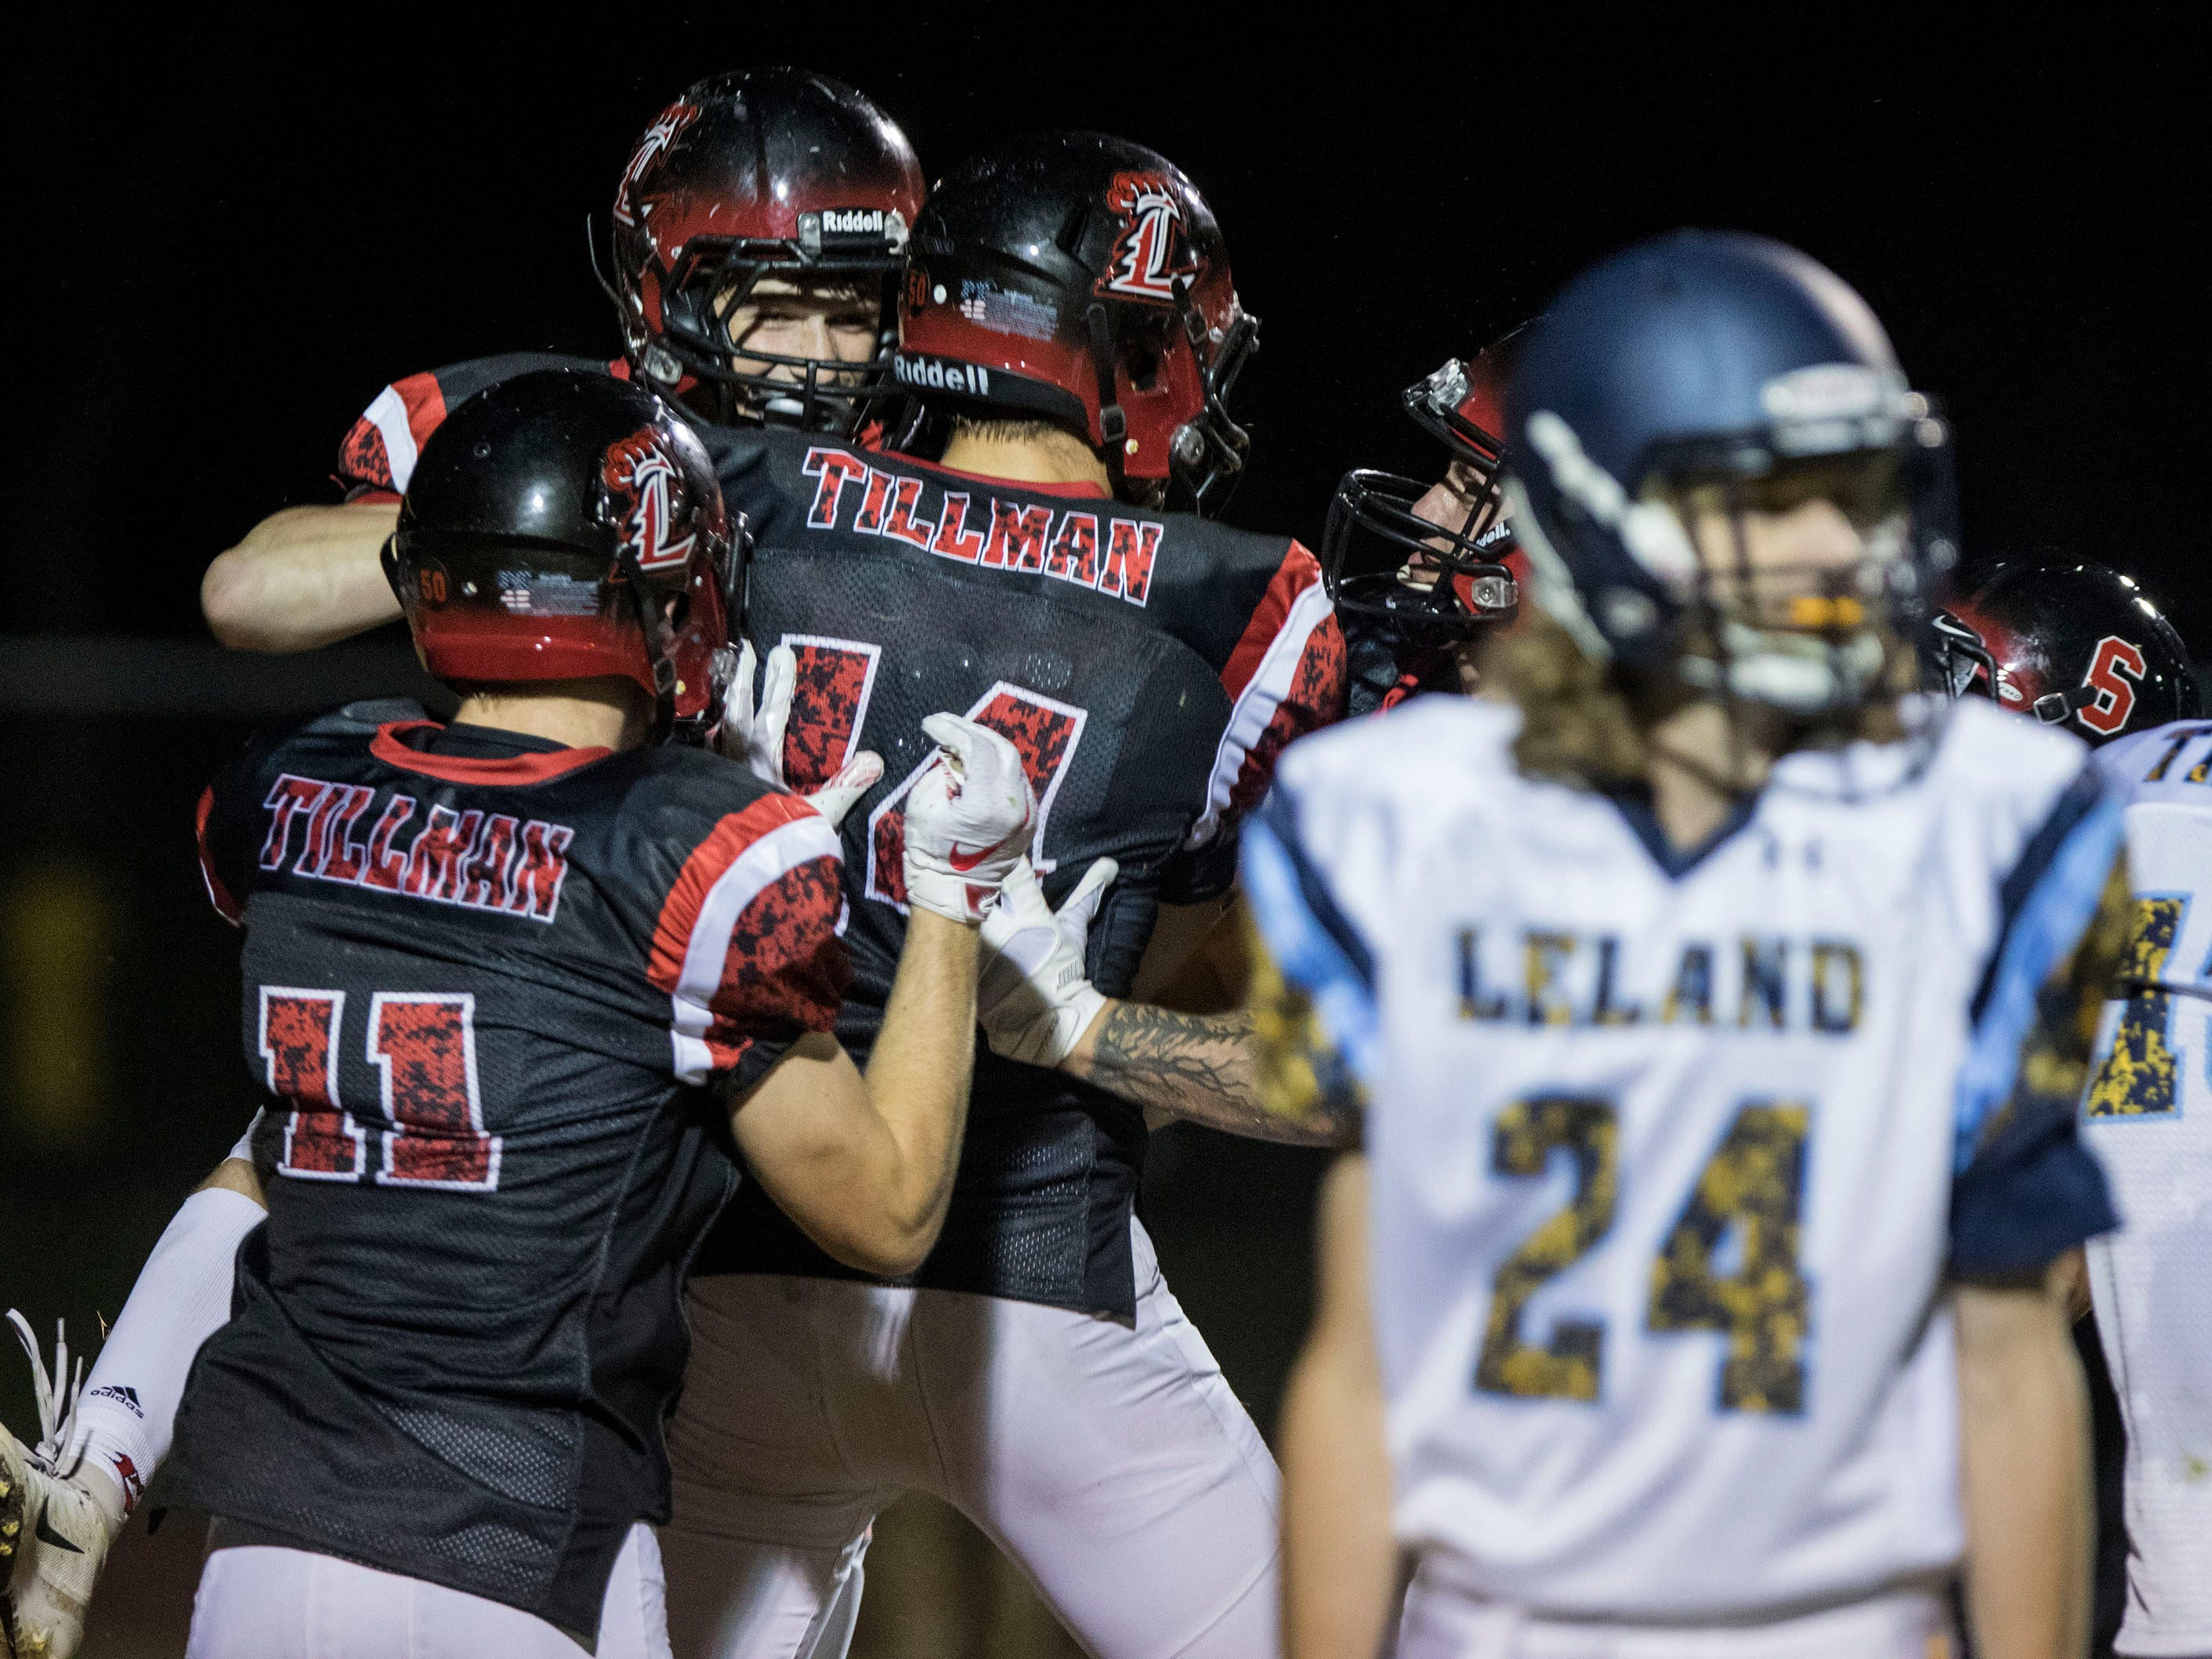 Liberty players celebrated a touchdown during their game with Leland (CA) in Peoria Friday, Sept.14, 2018. #azhsfb